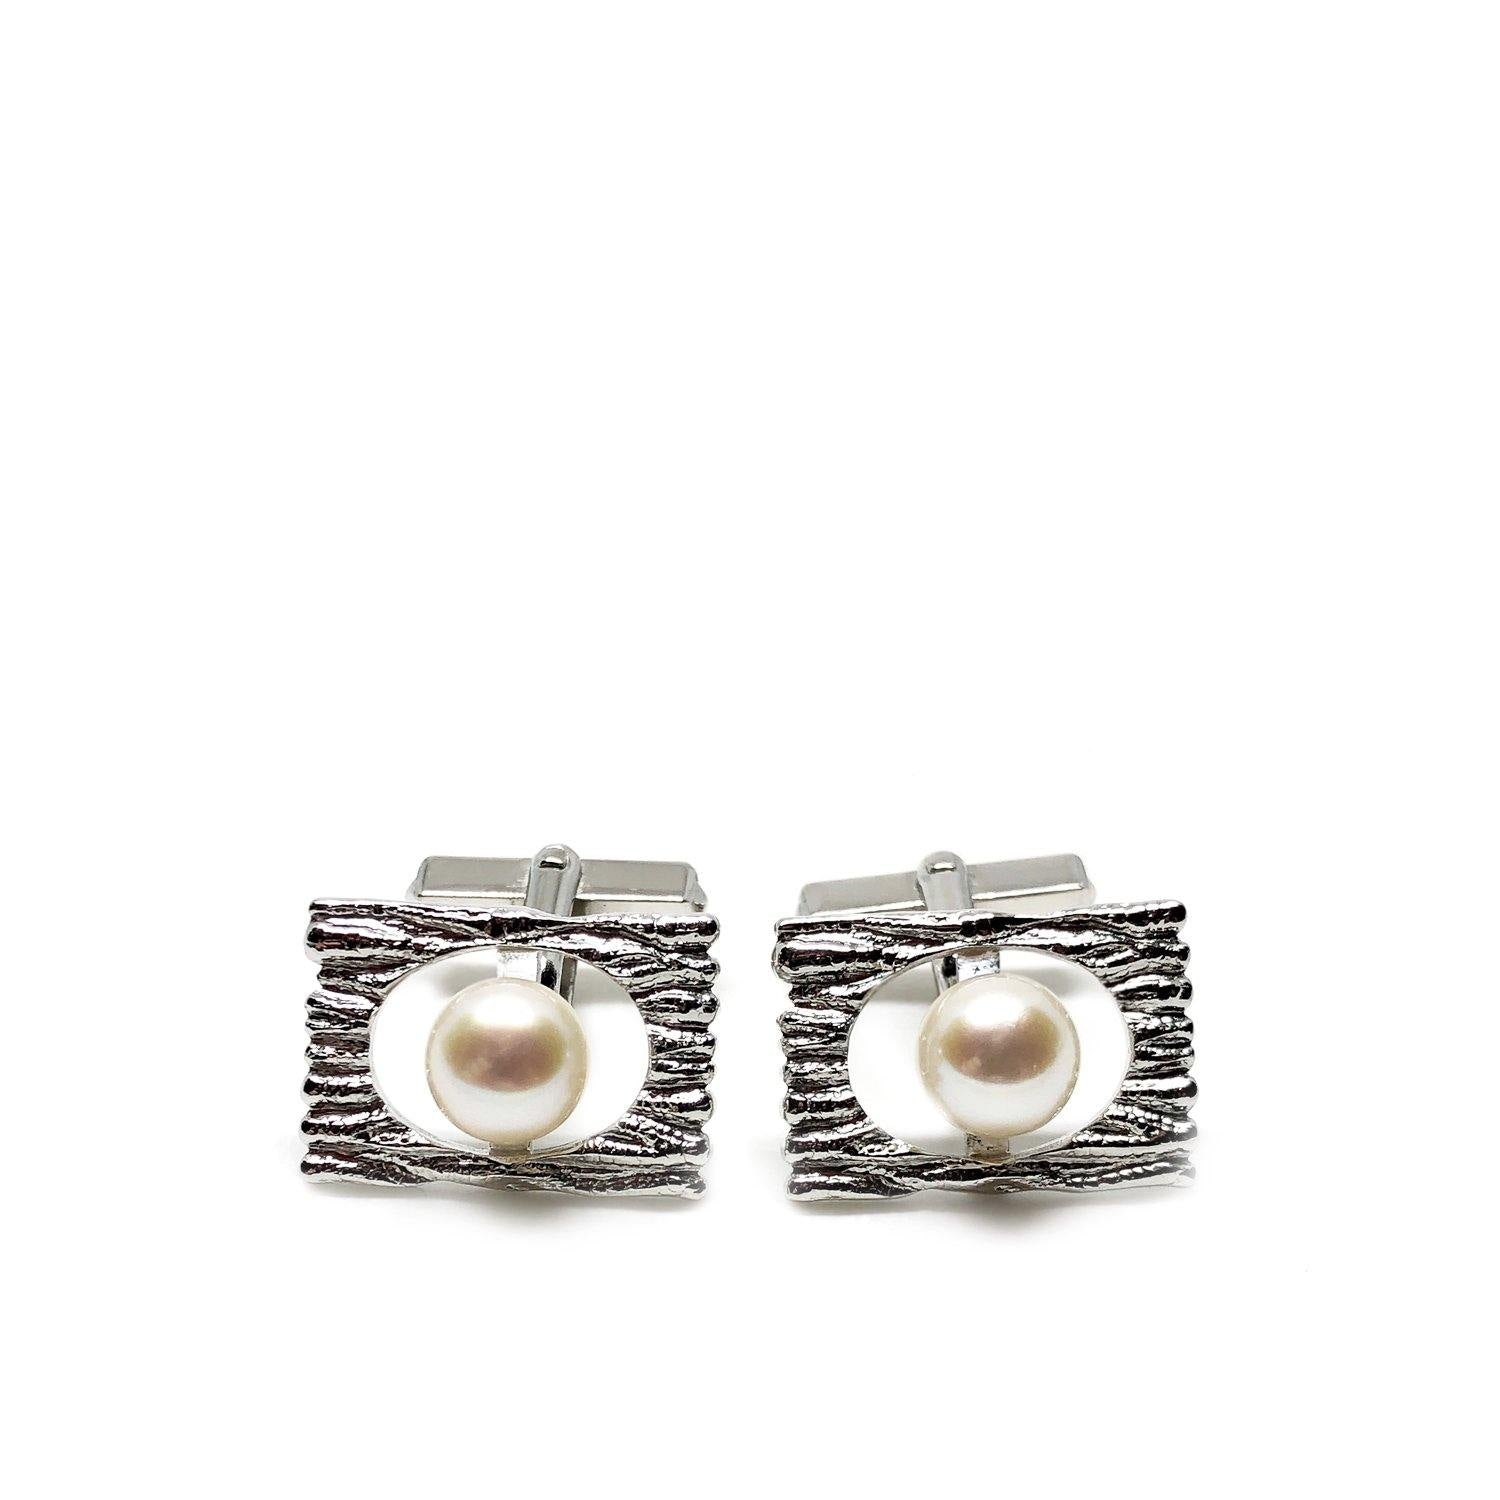 Wood Textured Modernist Japanese Cultured Akoya Pearl Round Cufflinks- Sterling Silver